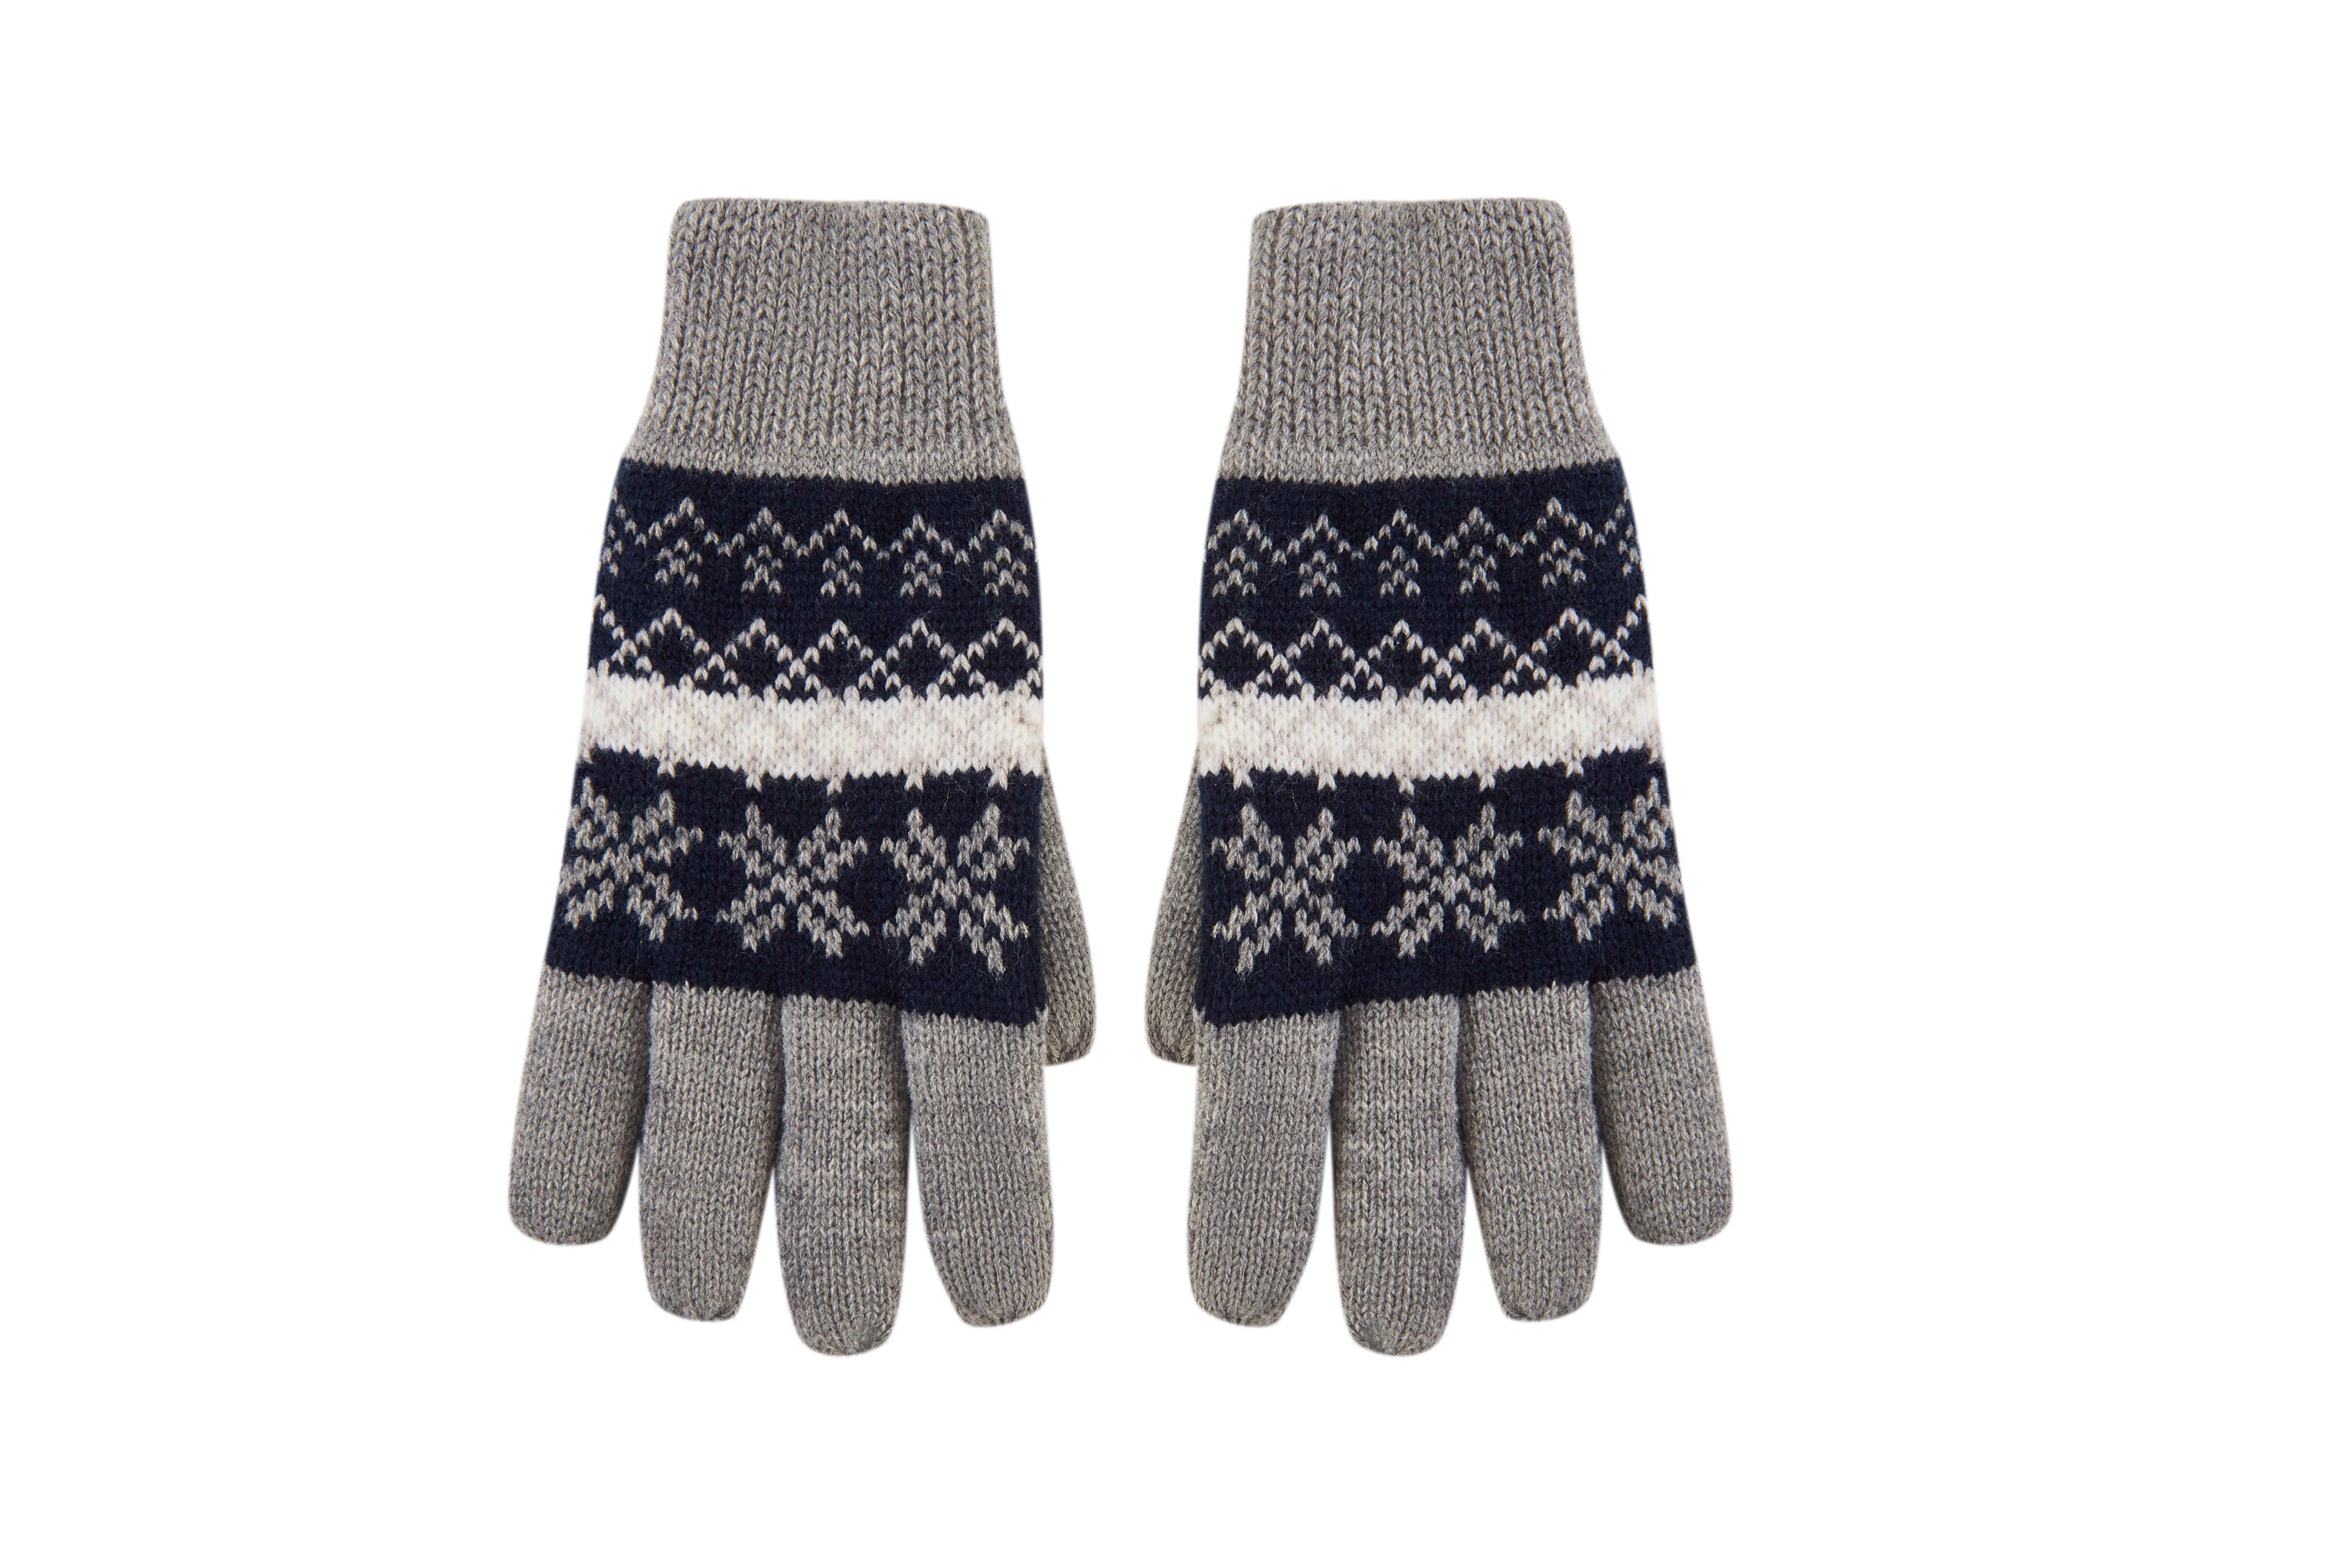 Boy's Snowflake Print Full Fingers Knitted Warm Lining Winter Gloves